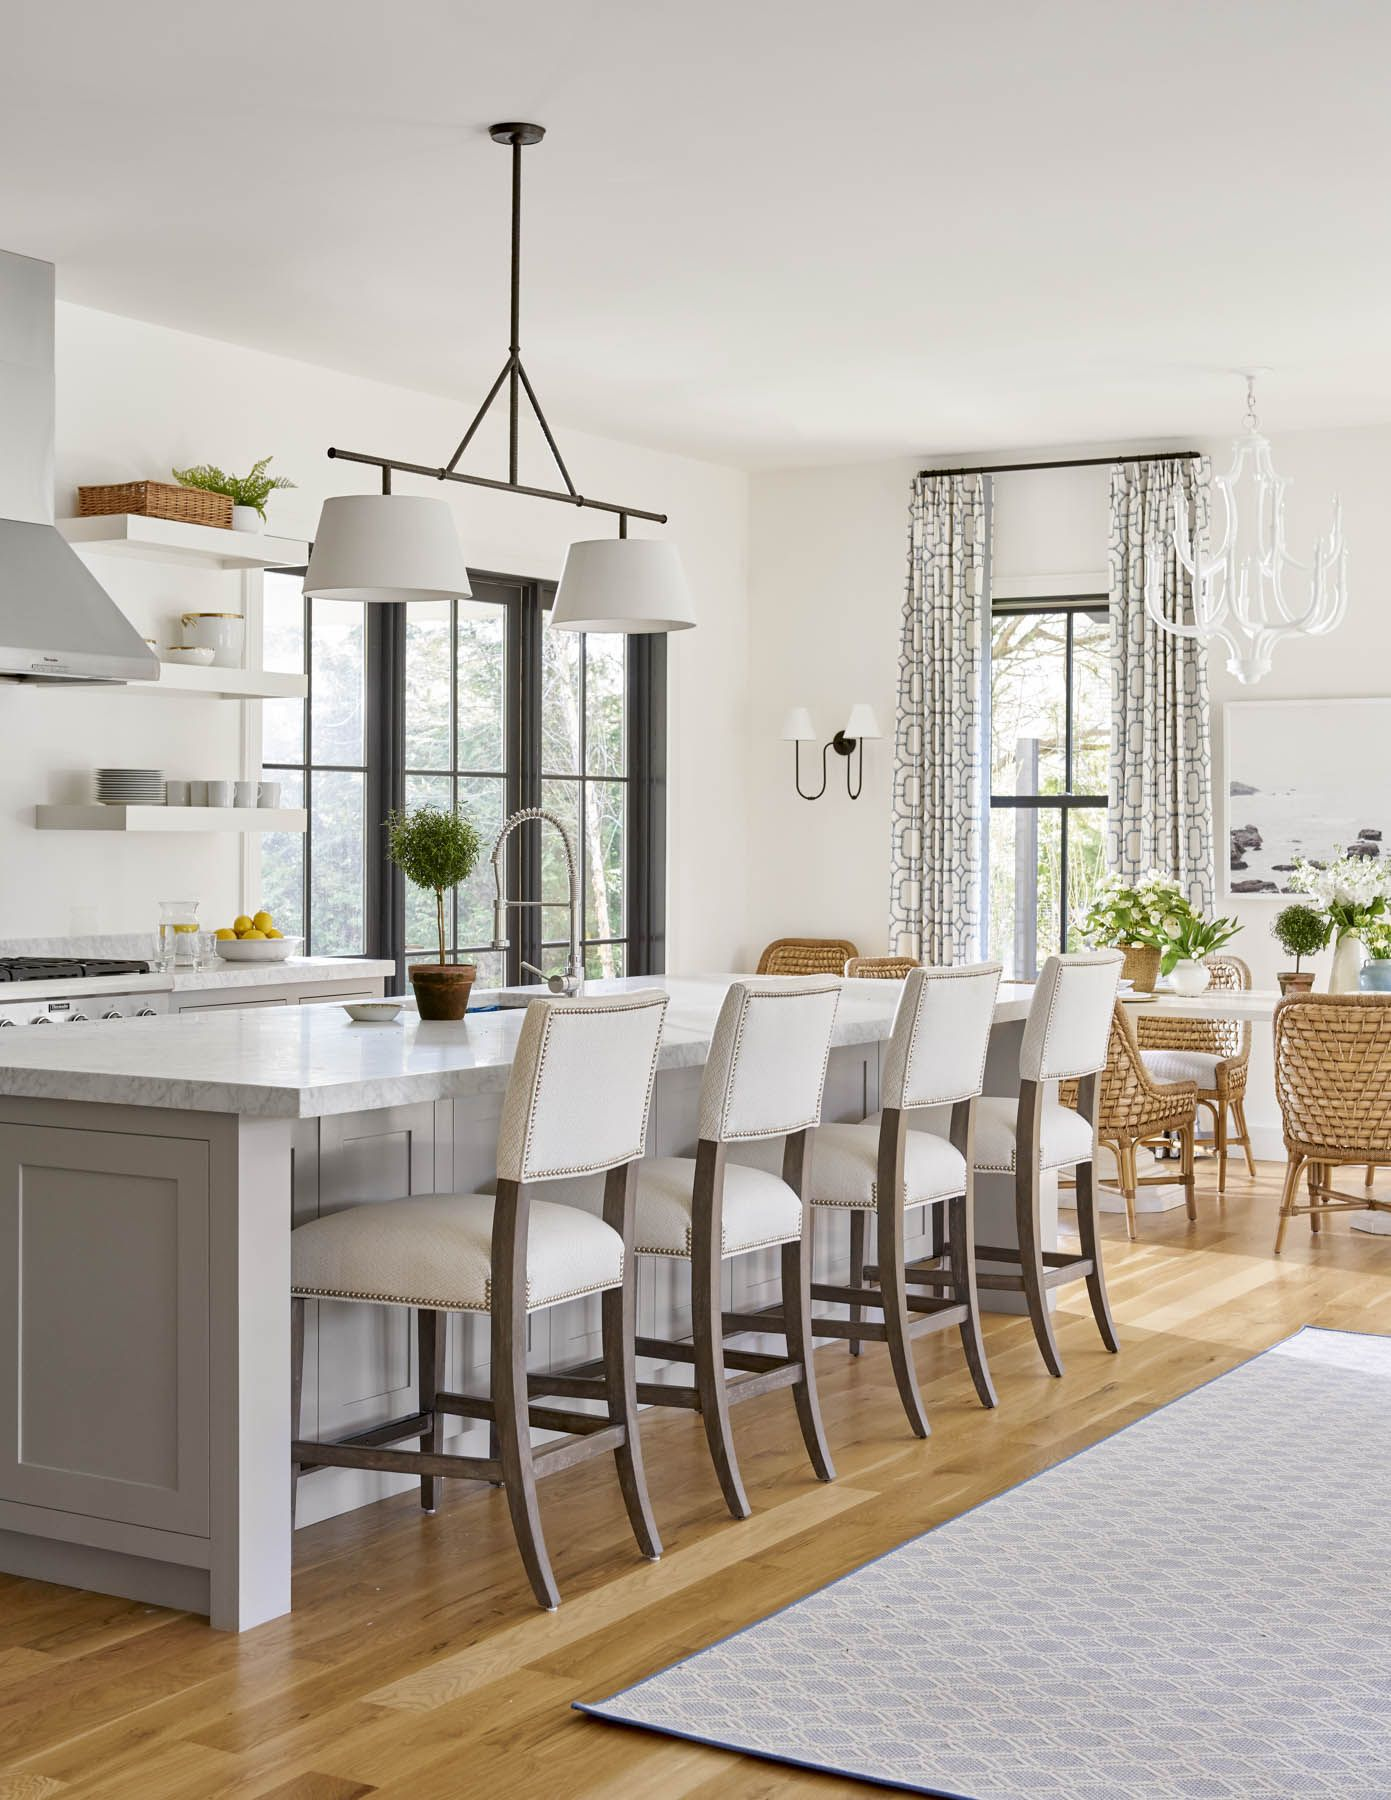 Transitional Kitchen White Kitchen Upholstered Counterstools Grey Kitchen Island Wicker Dining Chair Kitchen Design Grey Kitchen Island Kitchen Remodel